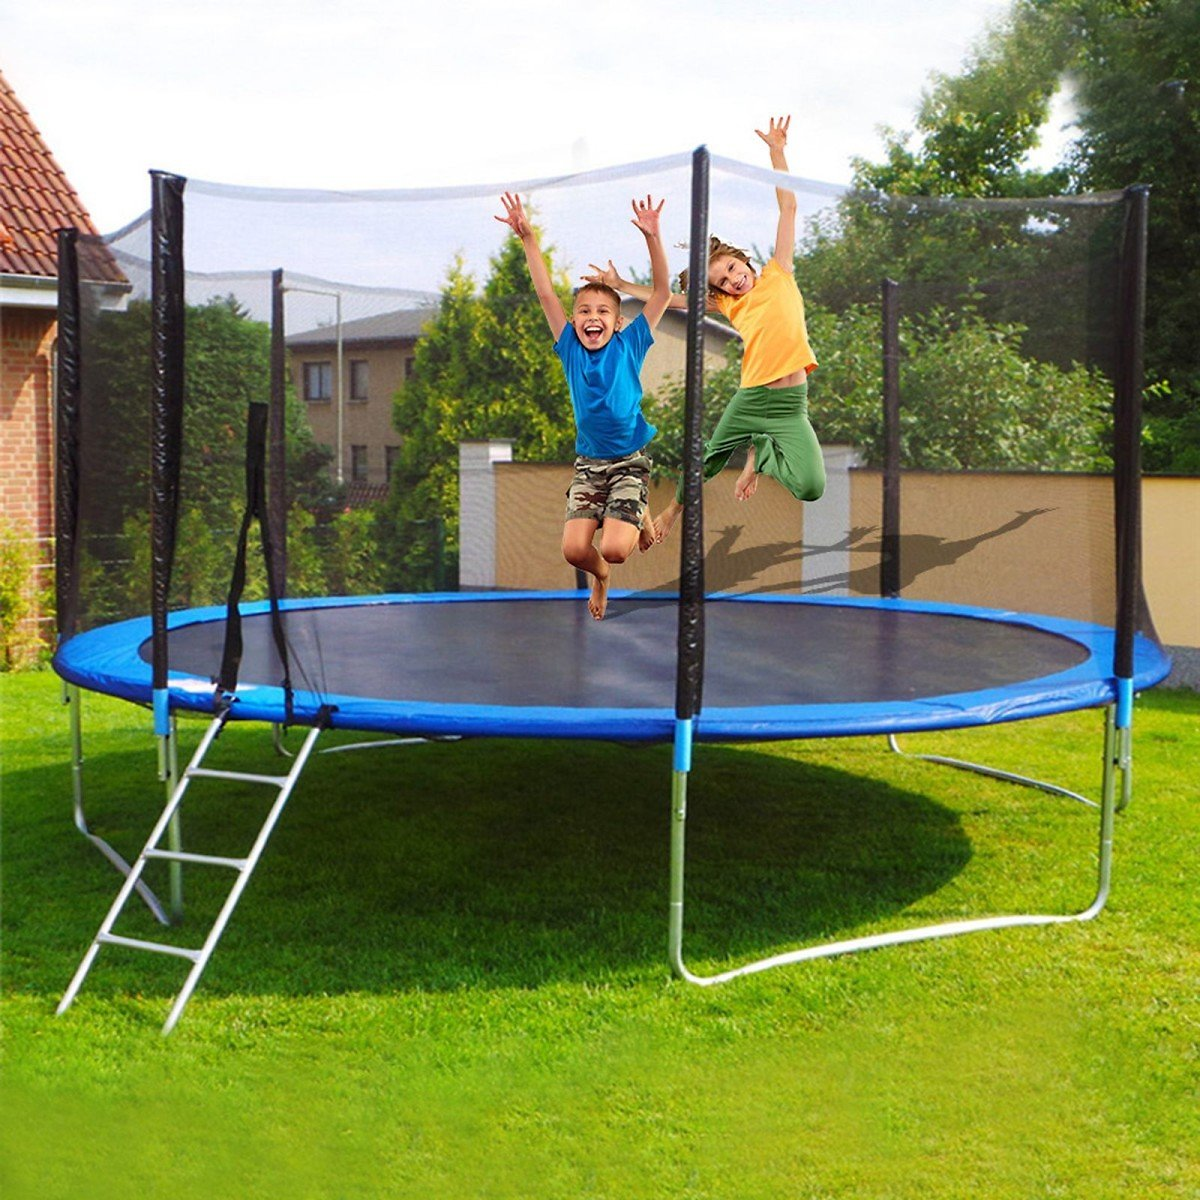 Spring Trampoline Savings Event